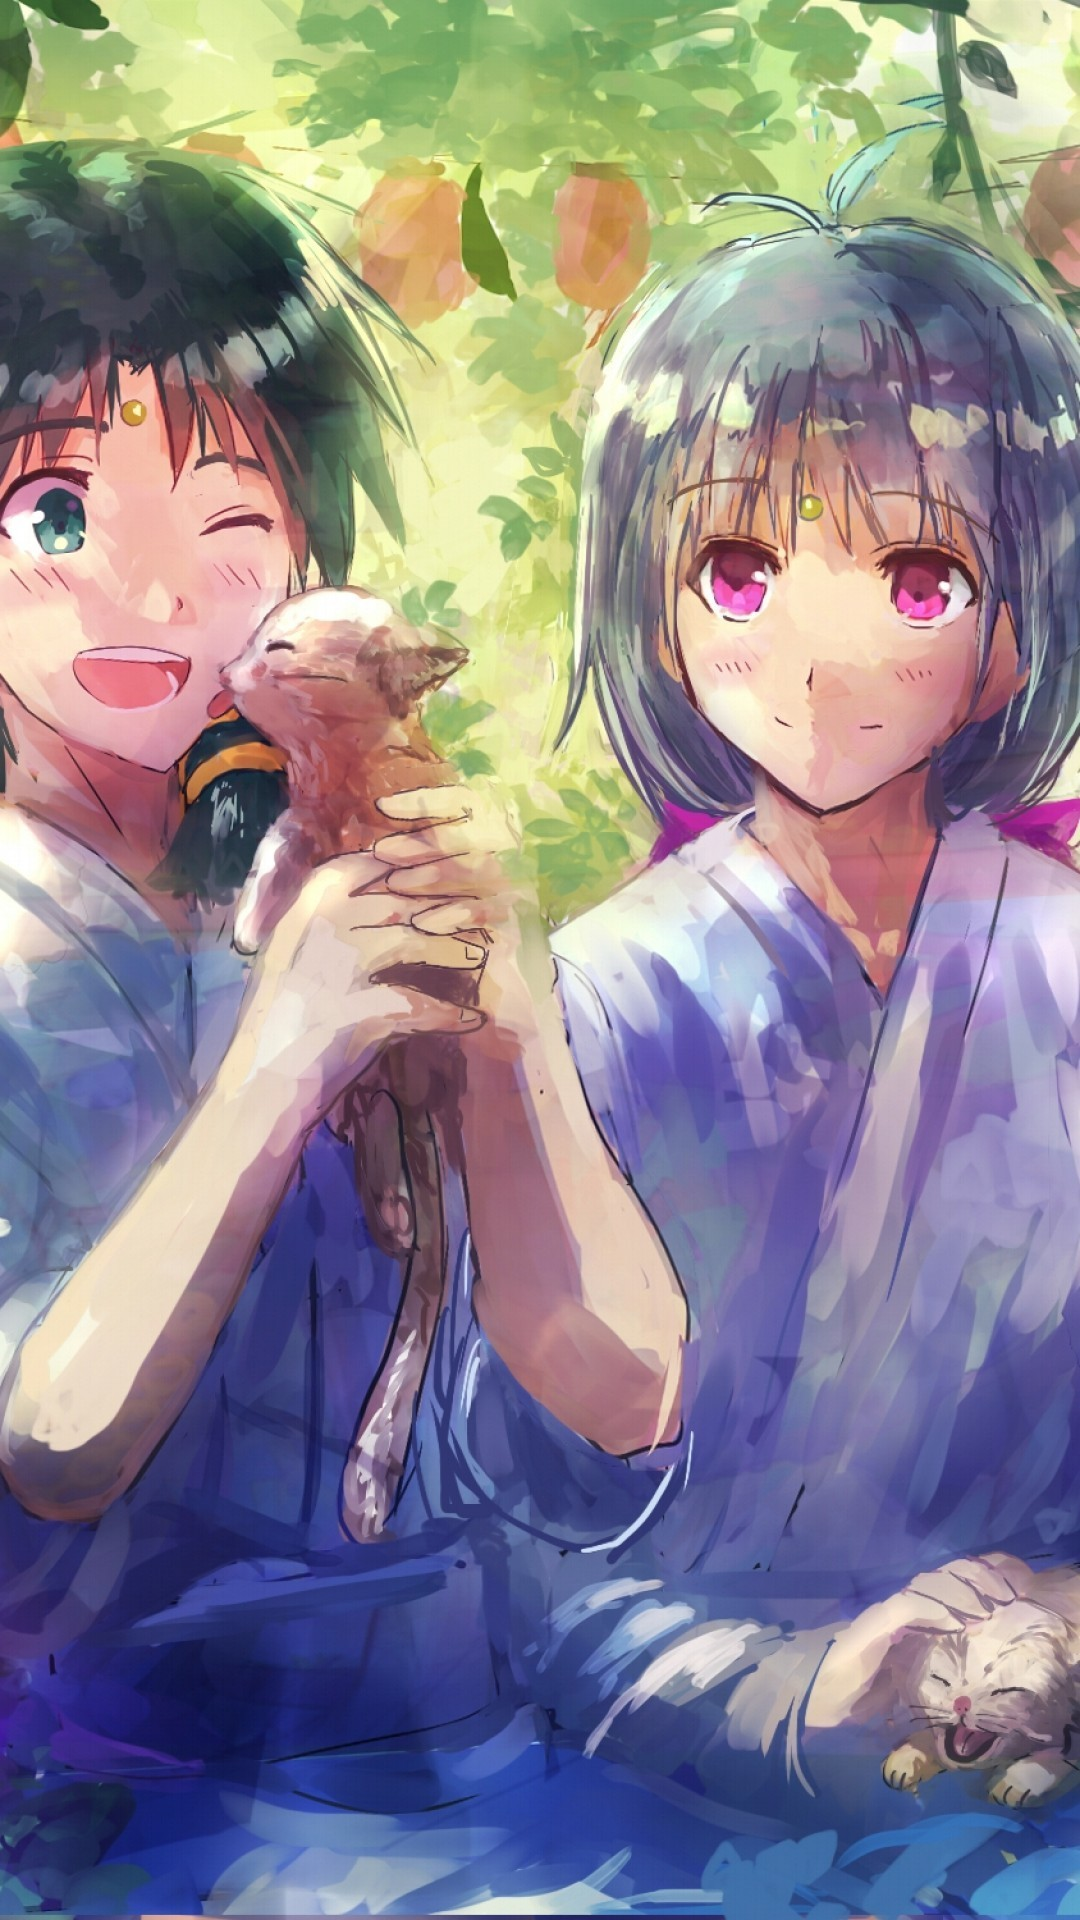 Res: 1080x1920, anime couple wallpaper hd #743775